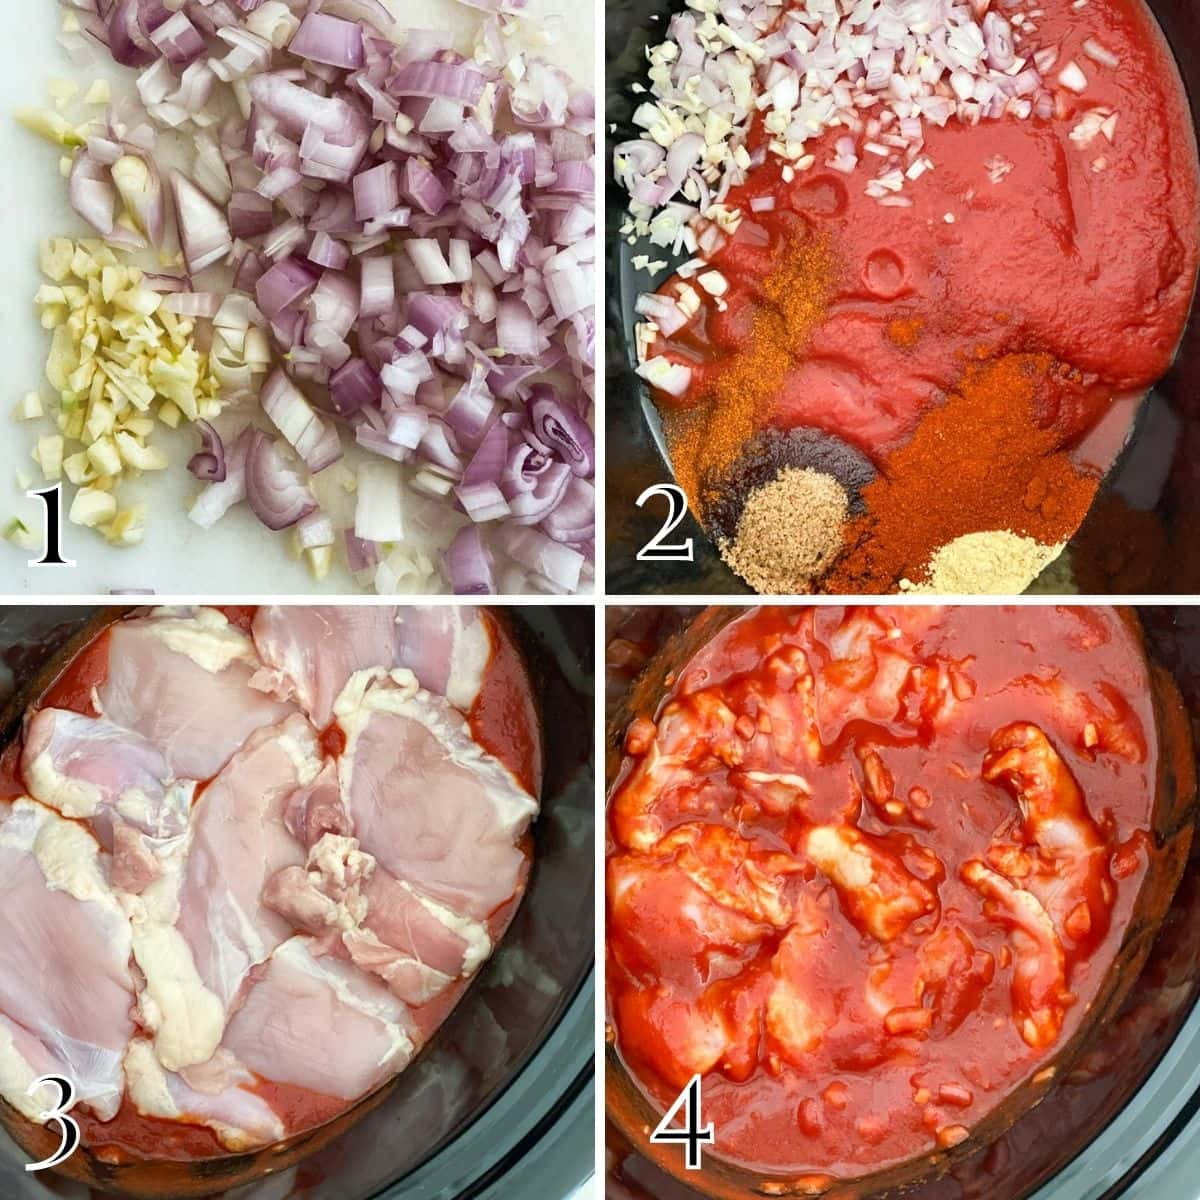 A step by step process of making crock pot bbq chicken thighs from adding spices, chicken, and cooking.